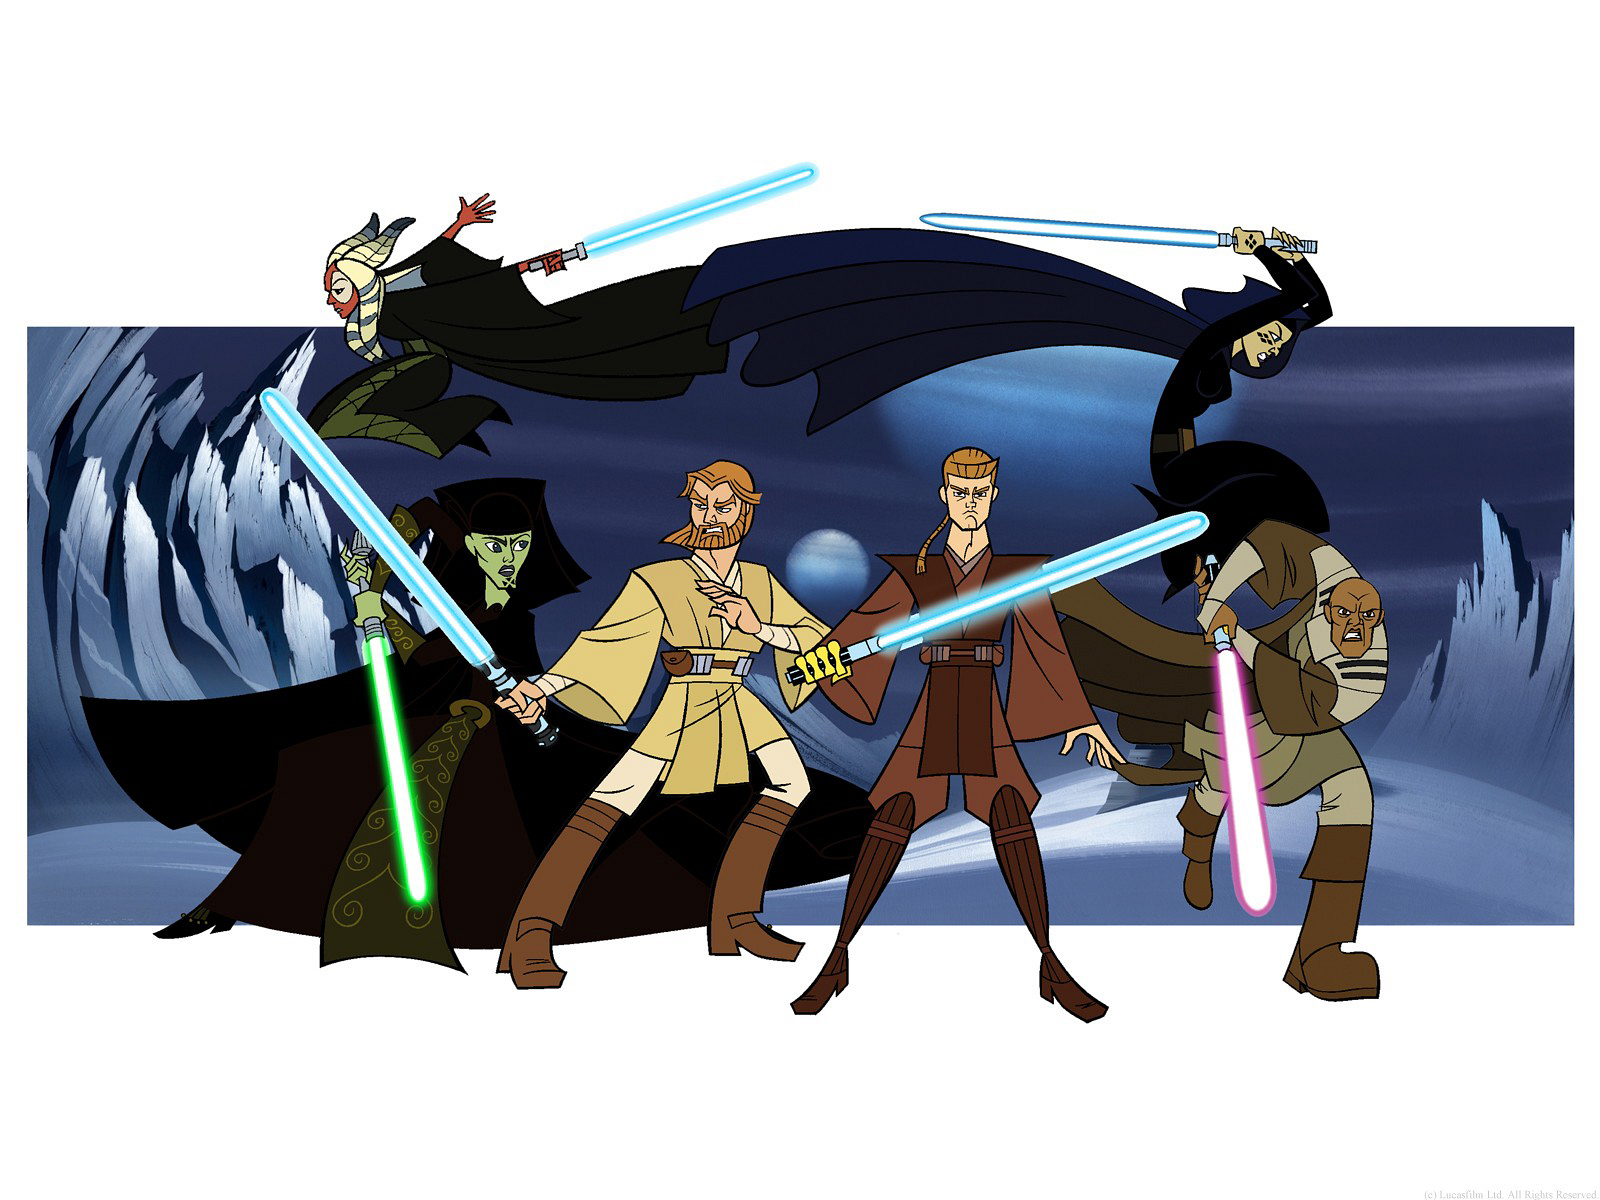 Plus Woman Pics Star Wars Cartoon Wallpapers